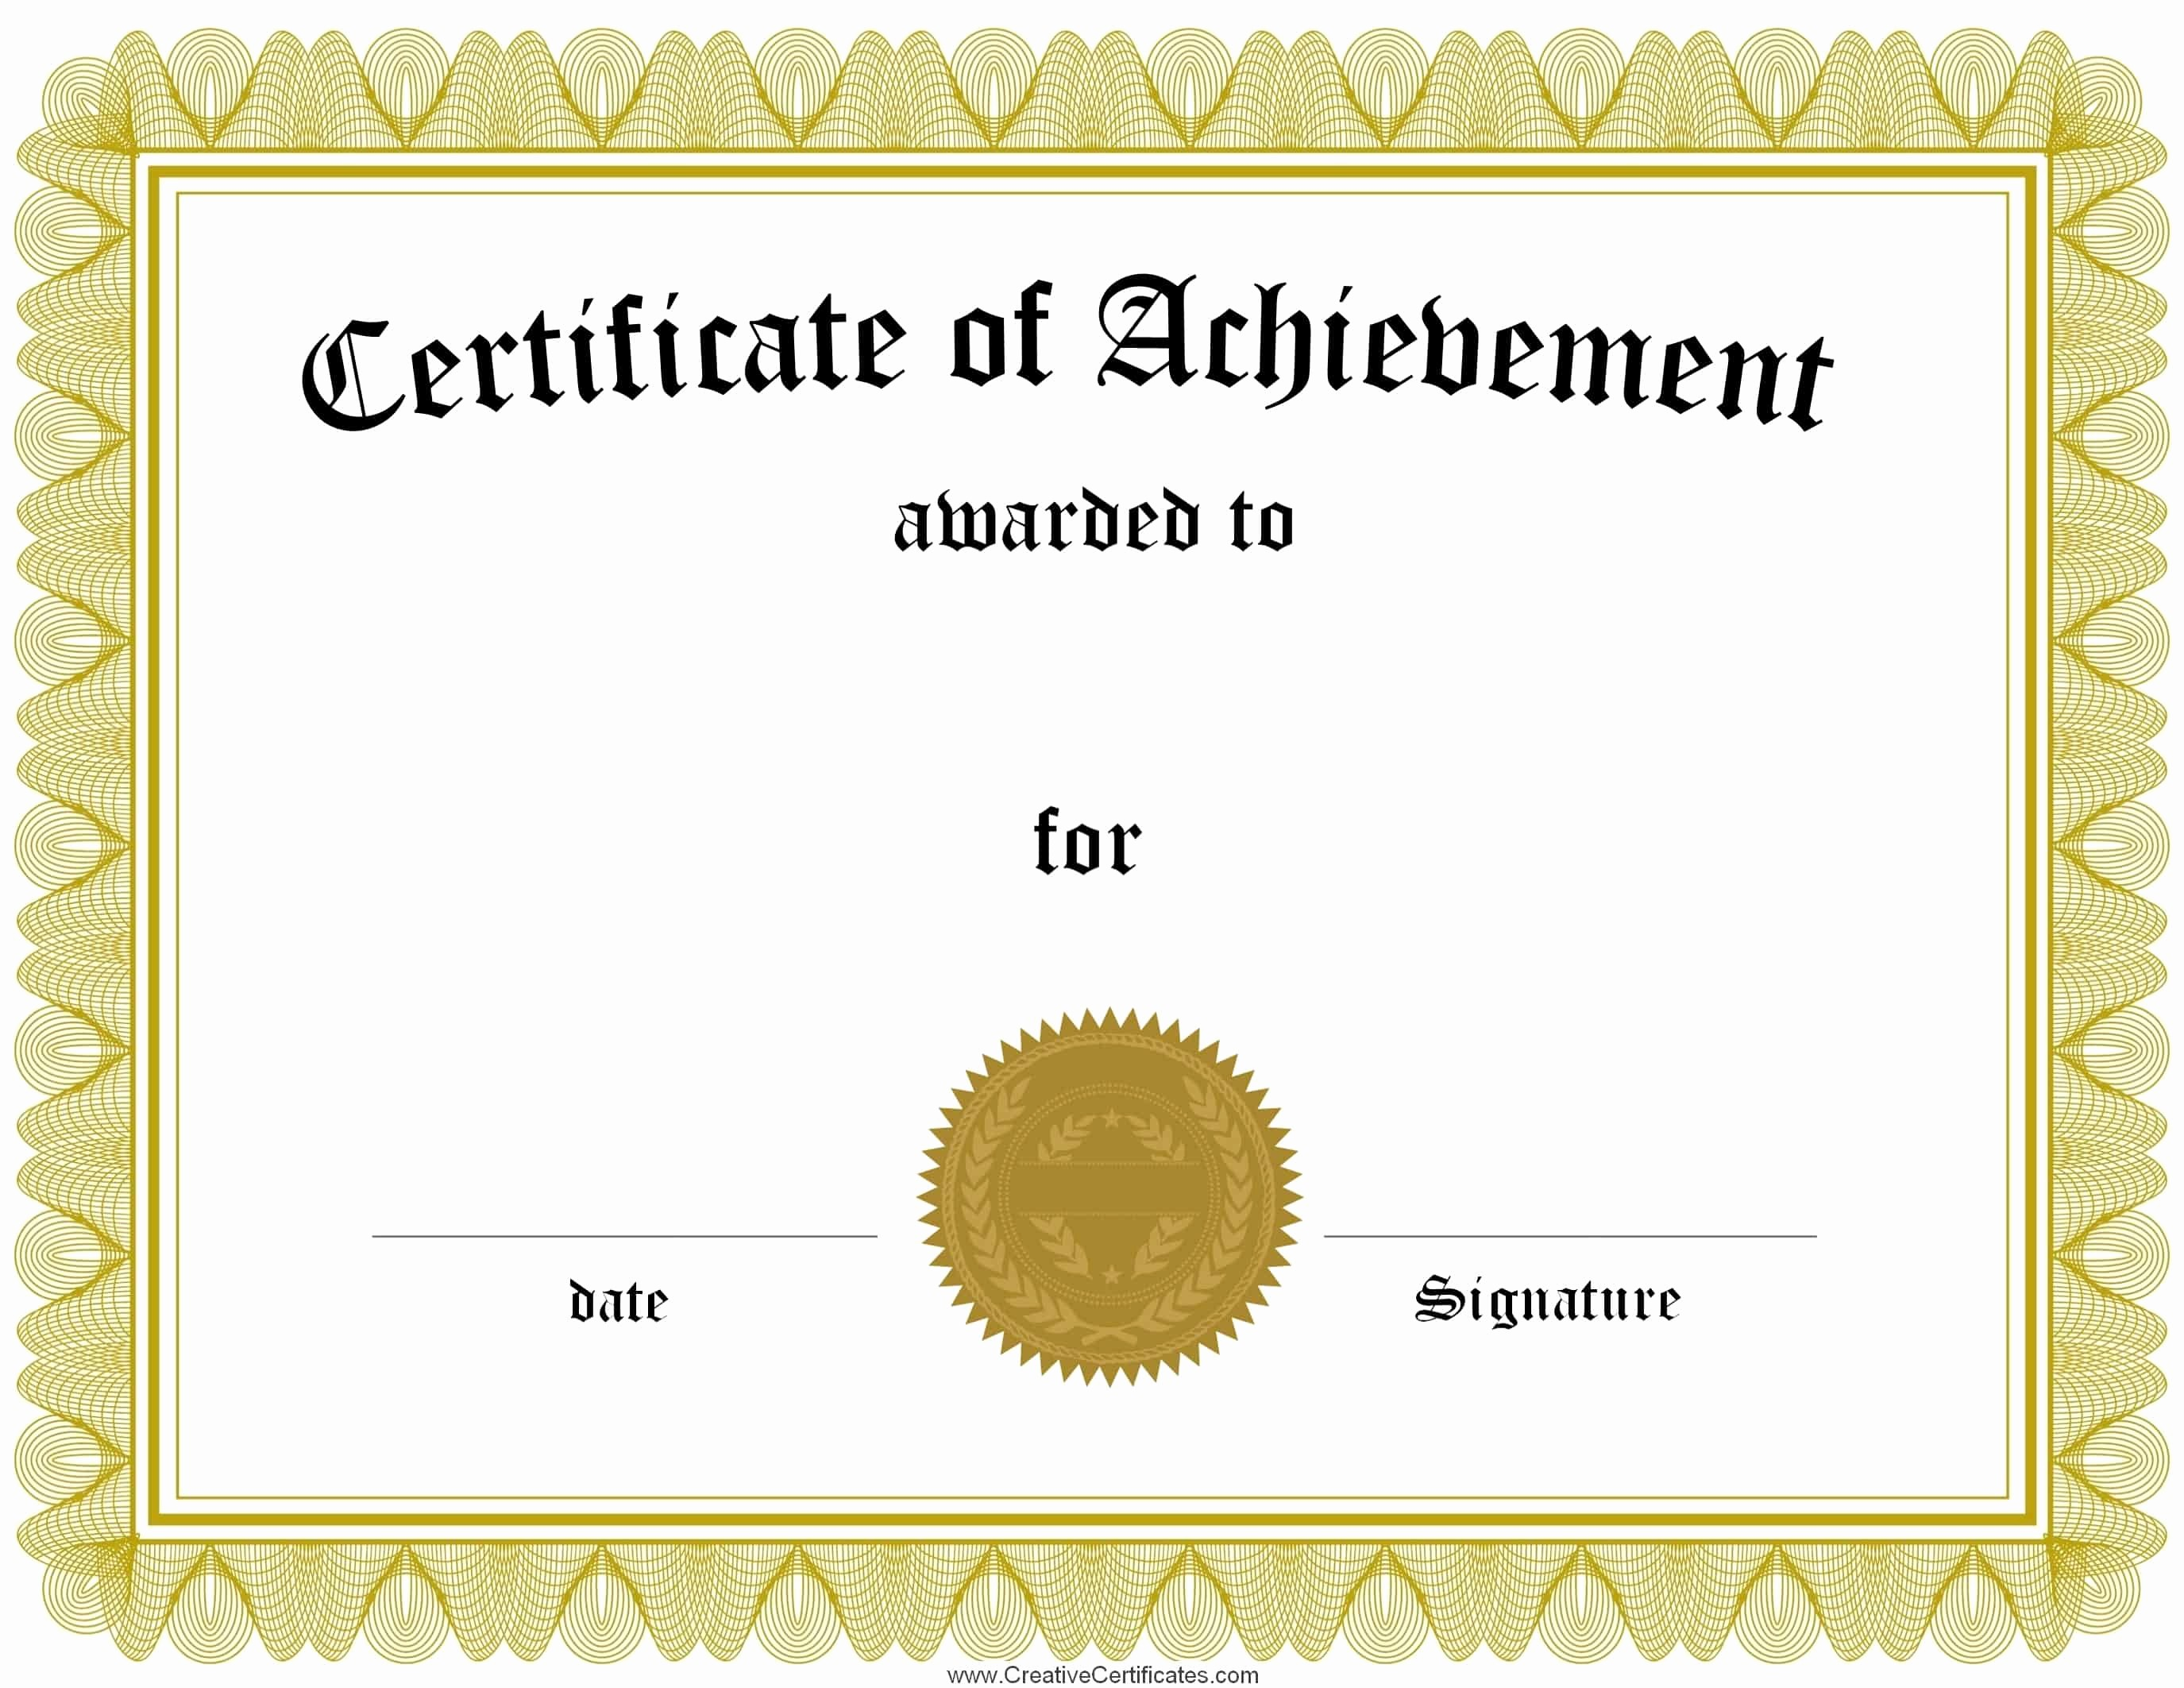 Certificate Of Achievement Free Template Best Of Free Customizable Certificate Of Achievement